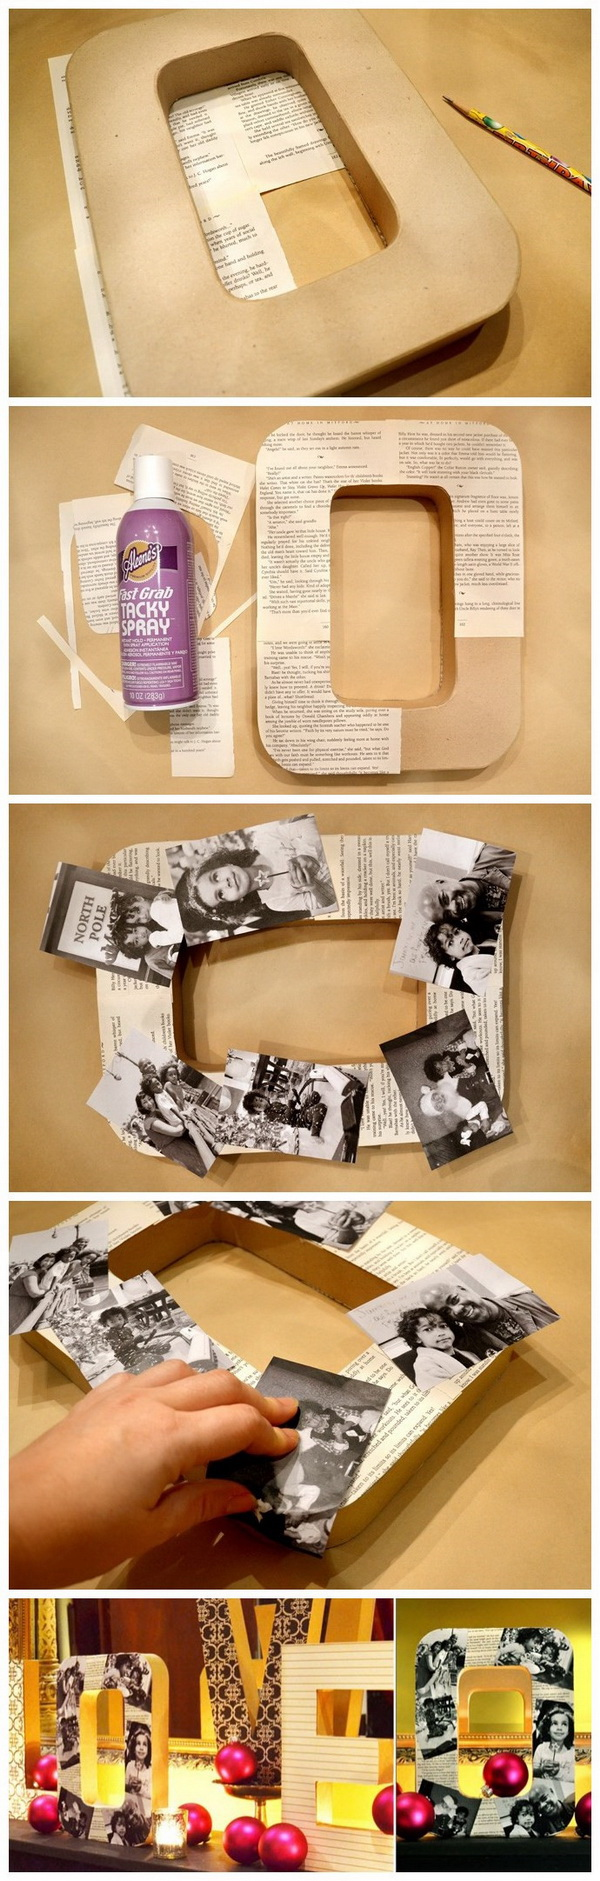 28 Creative Handmade Photo Crafts With Tutorials For Creative Juice